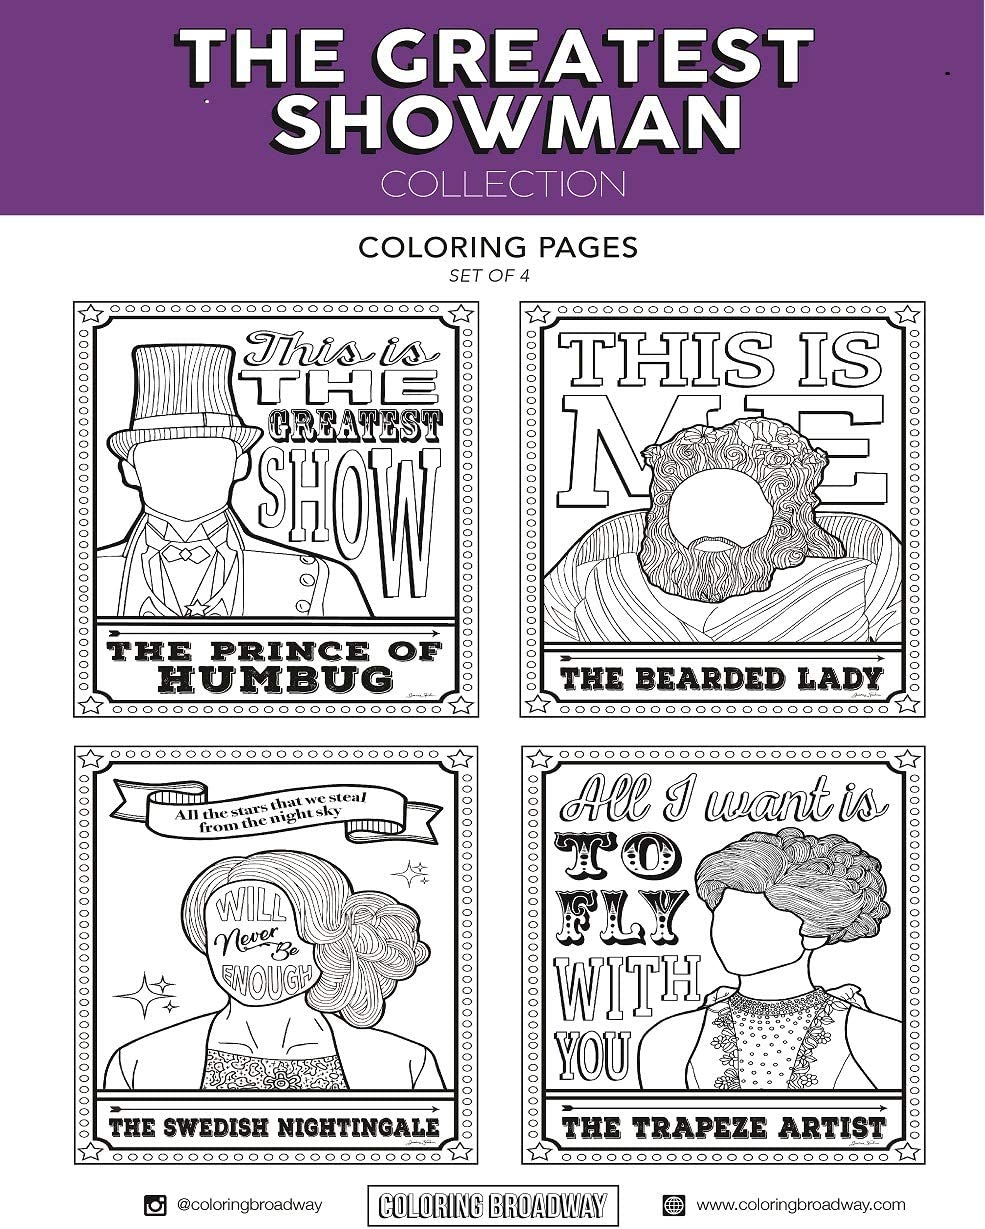 35 The Greatest Showman Coloring Pages - Free Printable ...